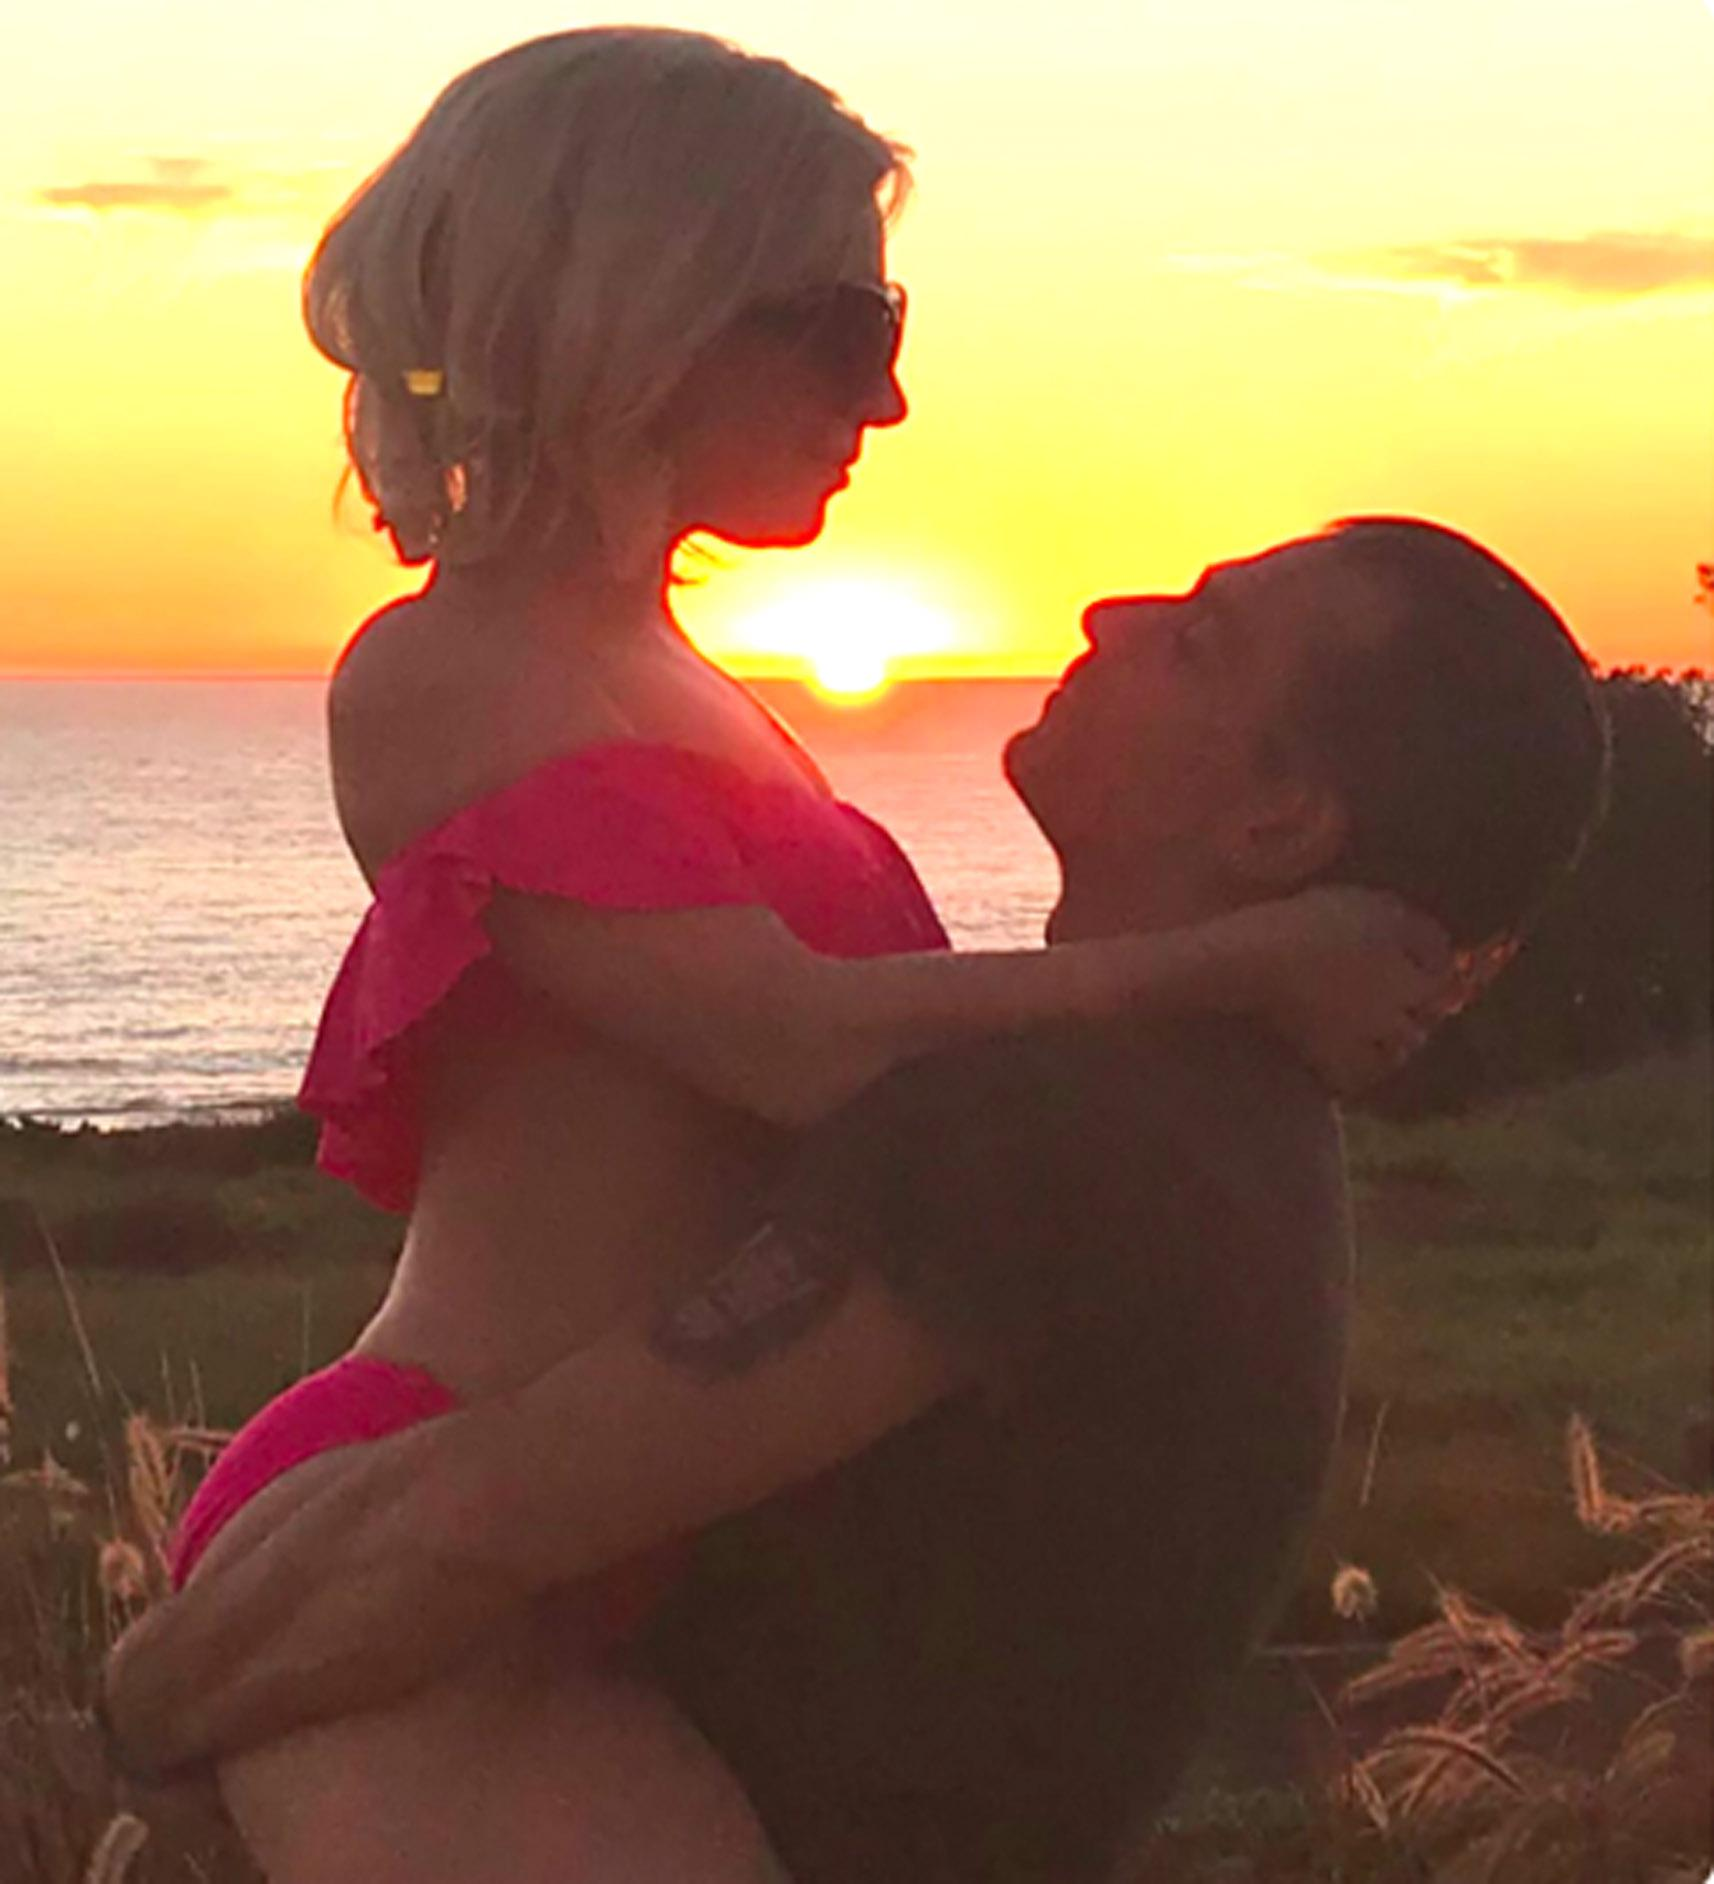 The pair made their relationship official with this romantic photo